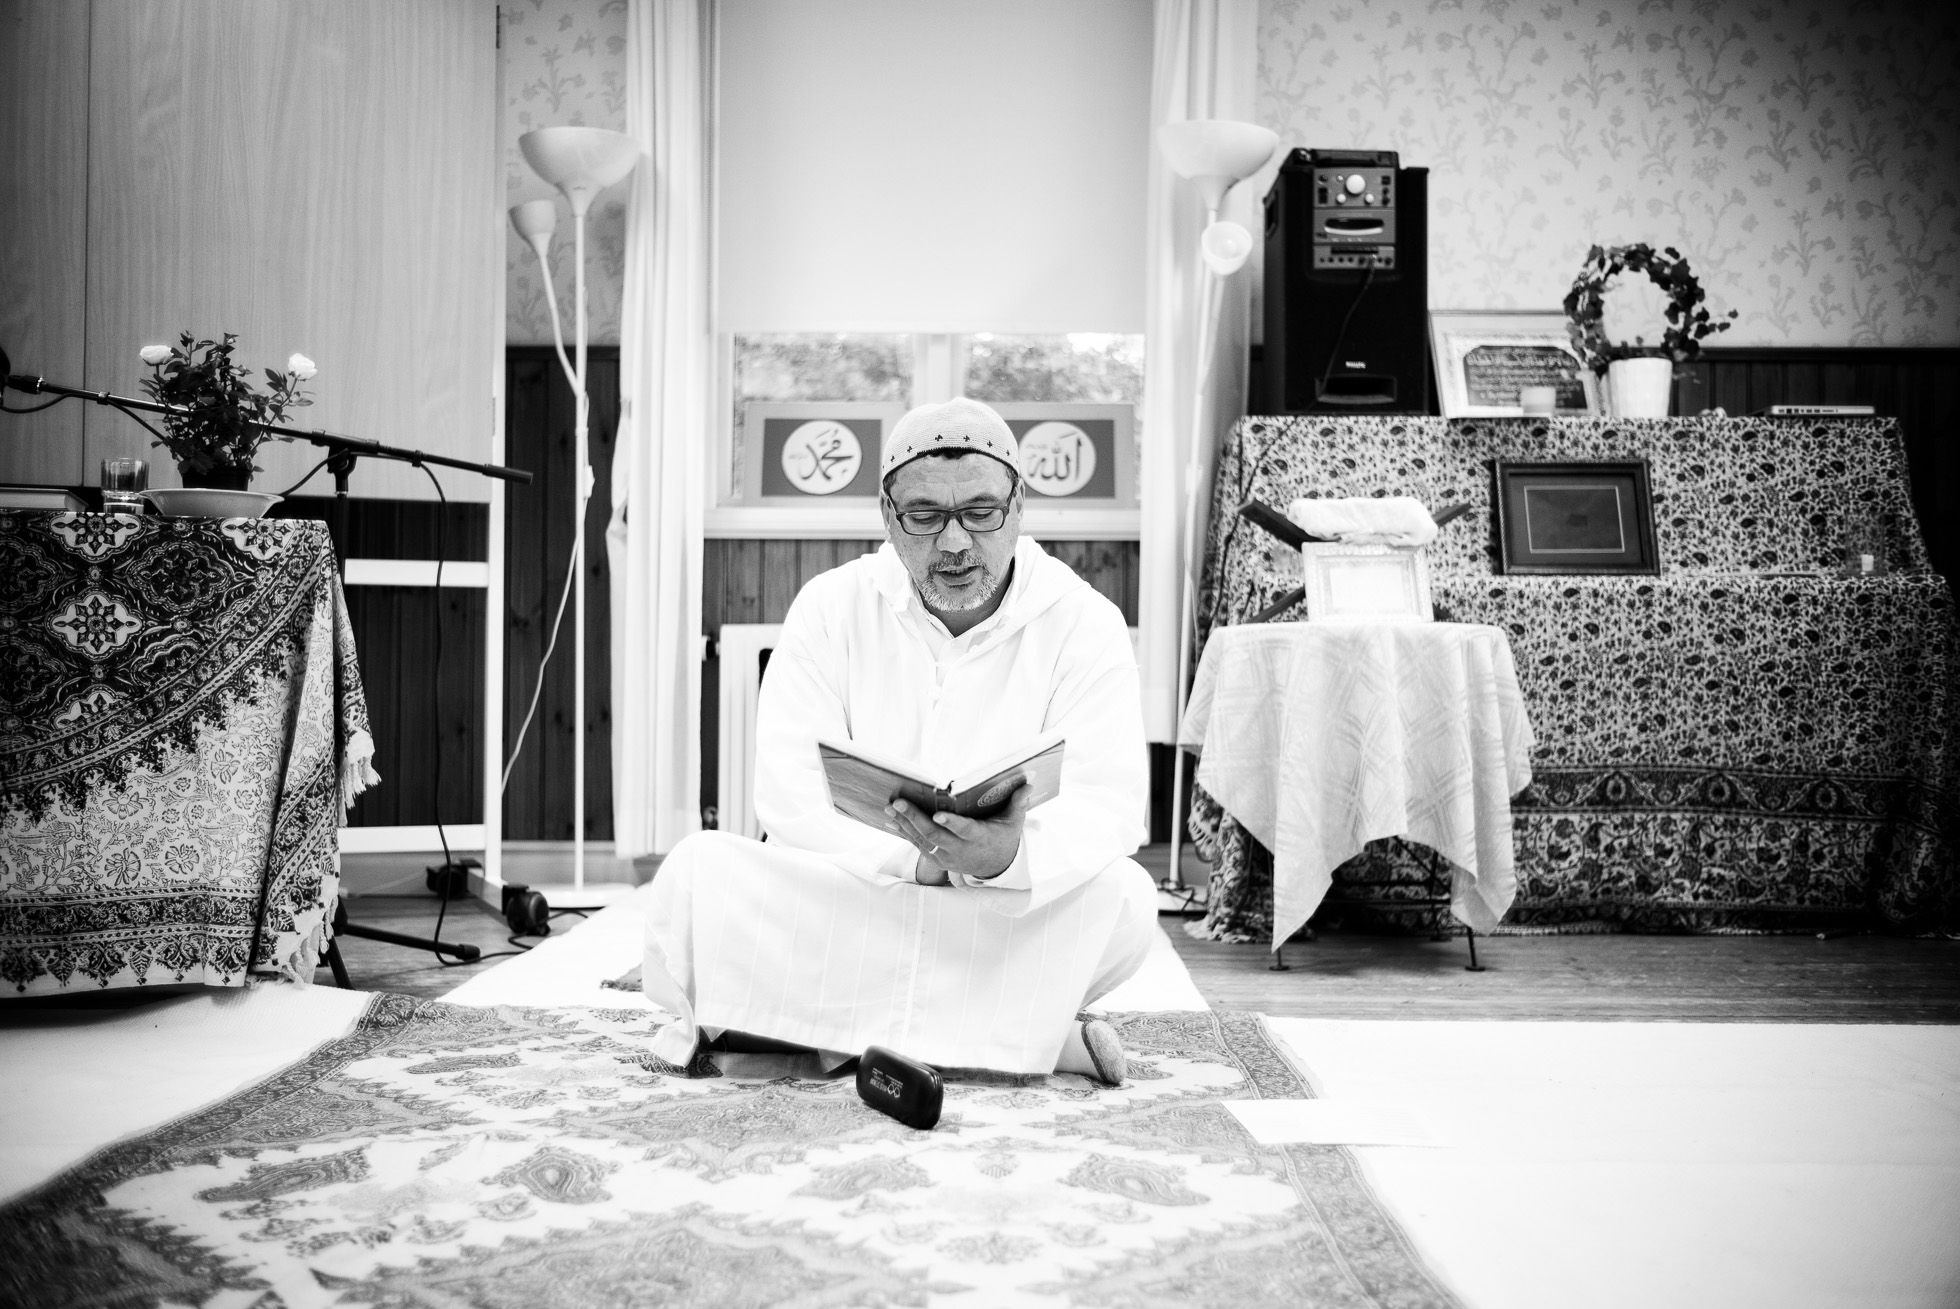 2016-08-26--Sufi-retreat-WLMS9__2016-08-26__0002-Redigera